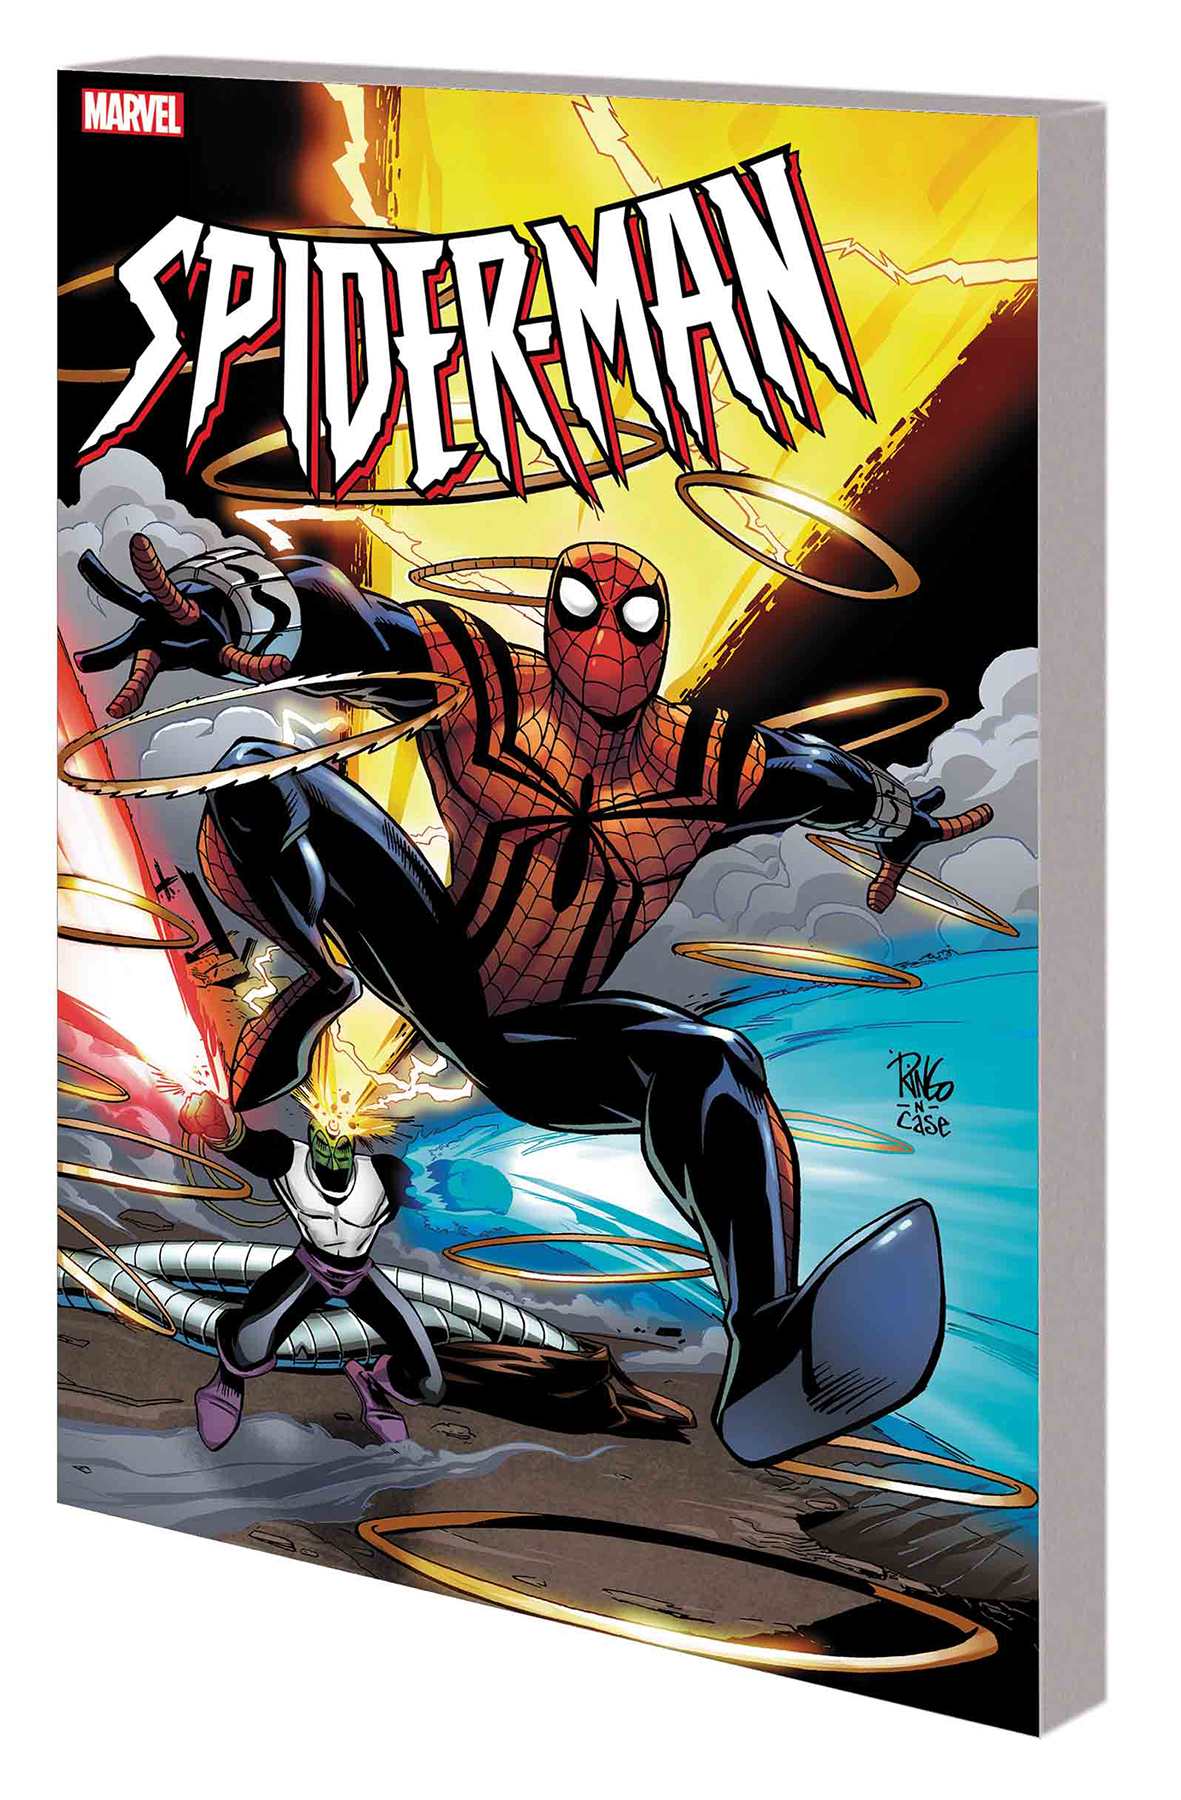 SPIDER MAN BY TODD DEZAGO AND MIKE WIERINGO TP